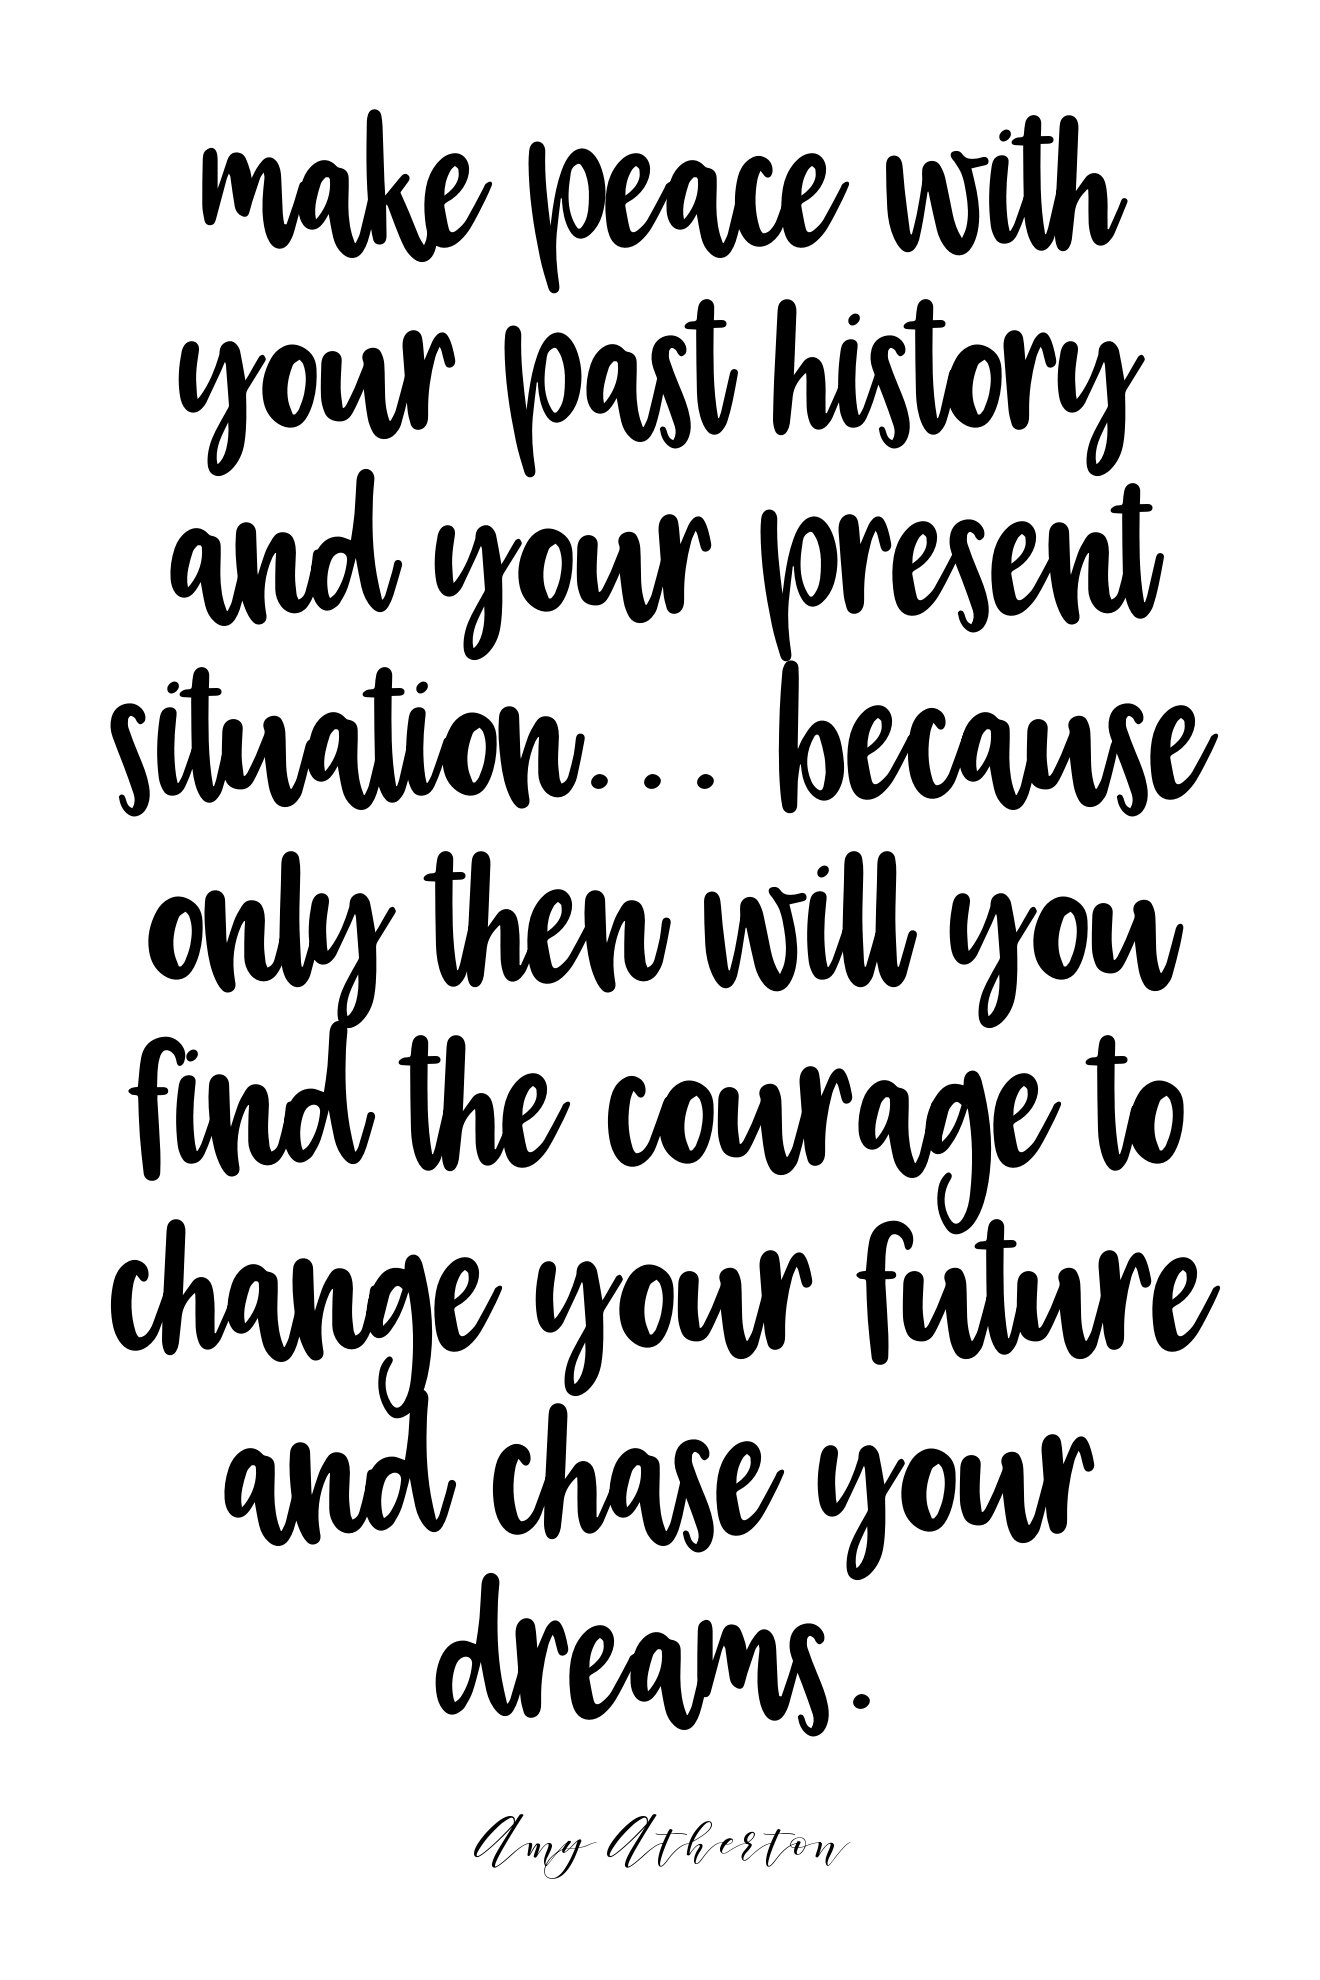 Make peace with your past history and your present situation... Because only then will you find the courage to change your future and chase your dreams. @amybakeshealthy